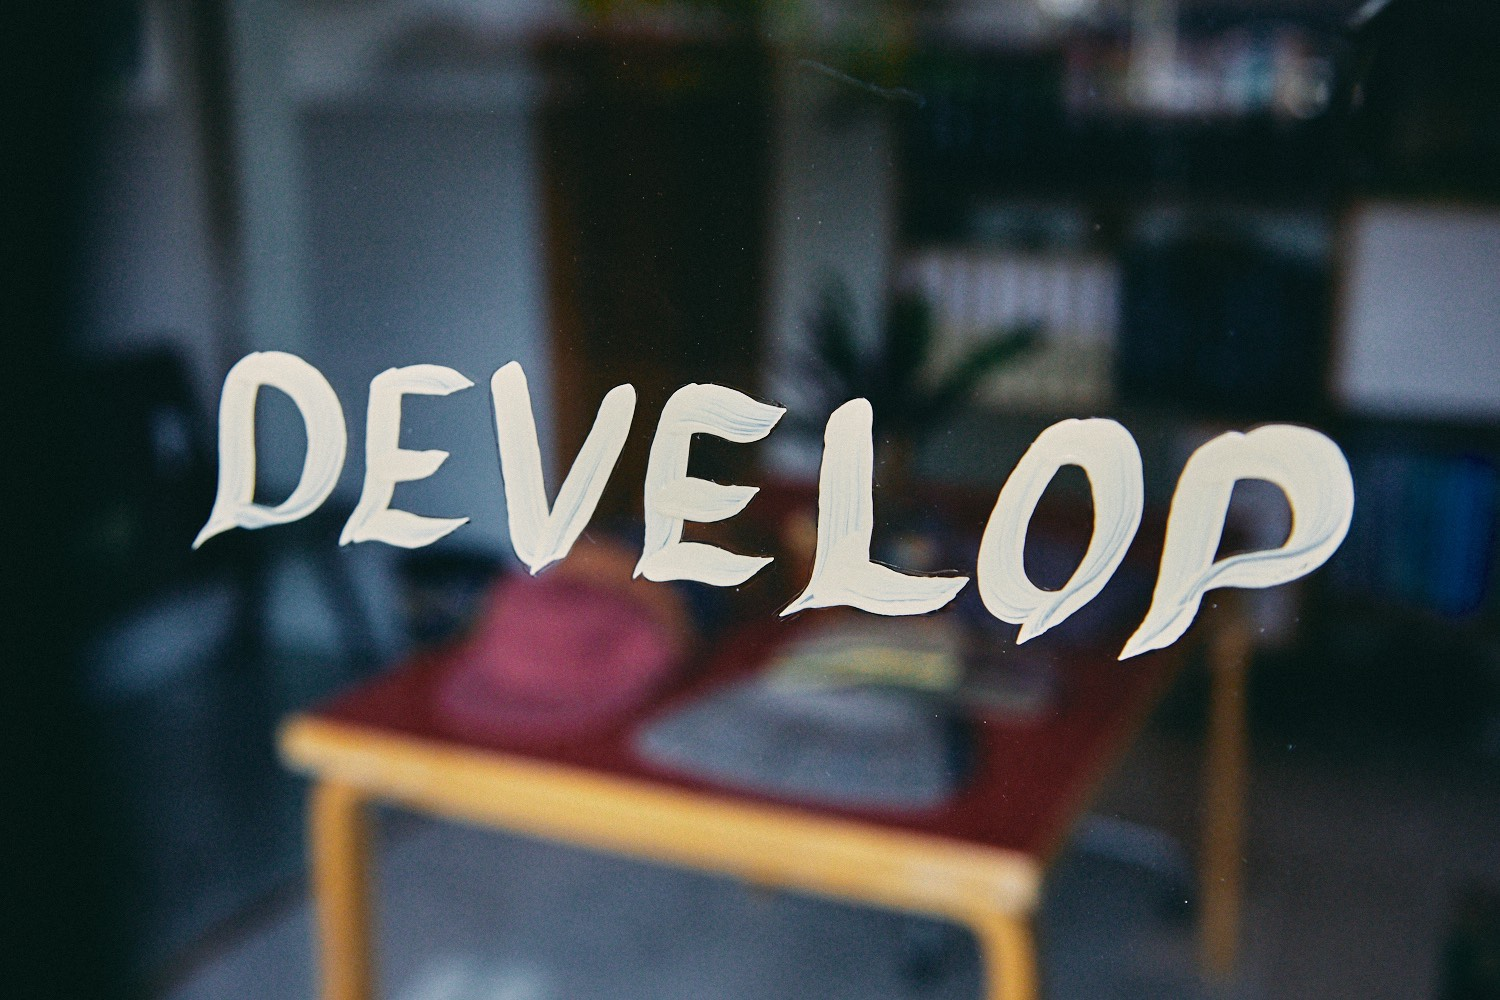 DEVELOP LIBRARY NOROLL